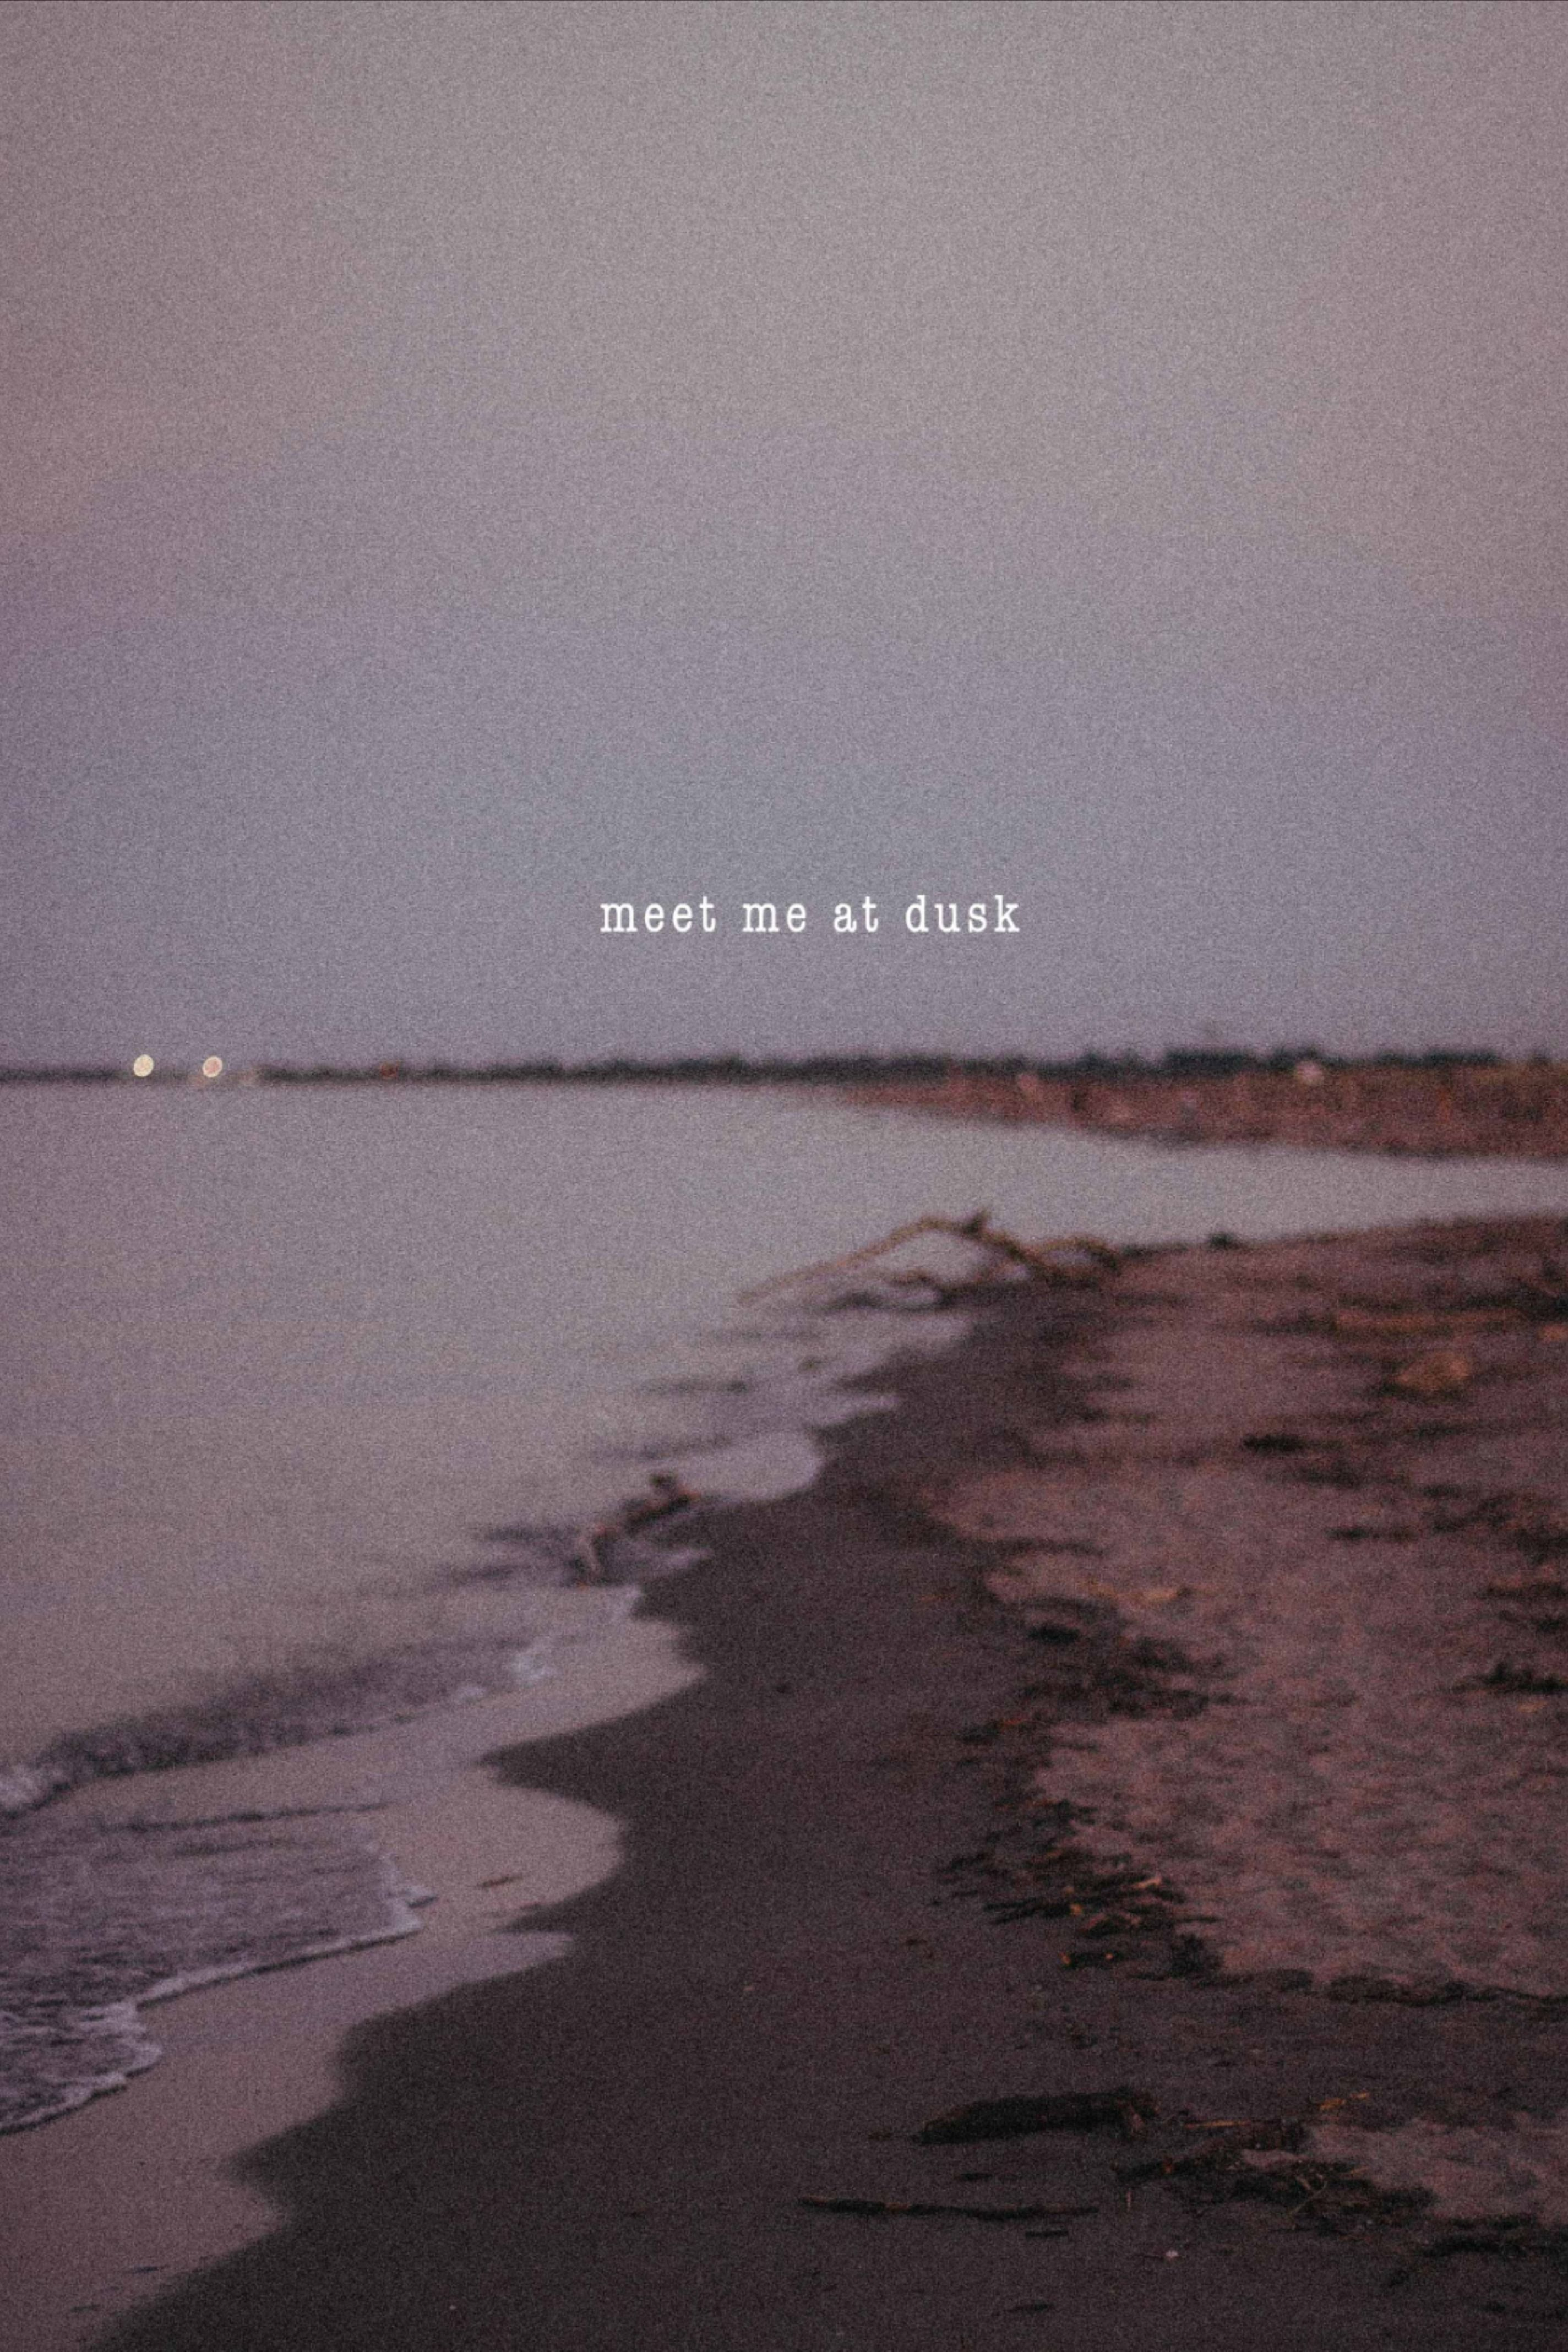 Meet Me At Dusk Art Quotes In 2020 Sunset Quotes Instagram Aesthetic Captions Aesthetic Qoutes